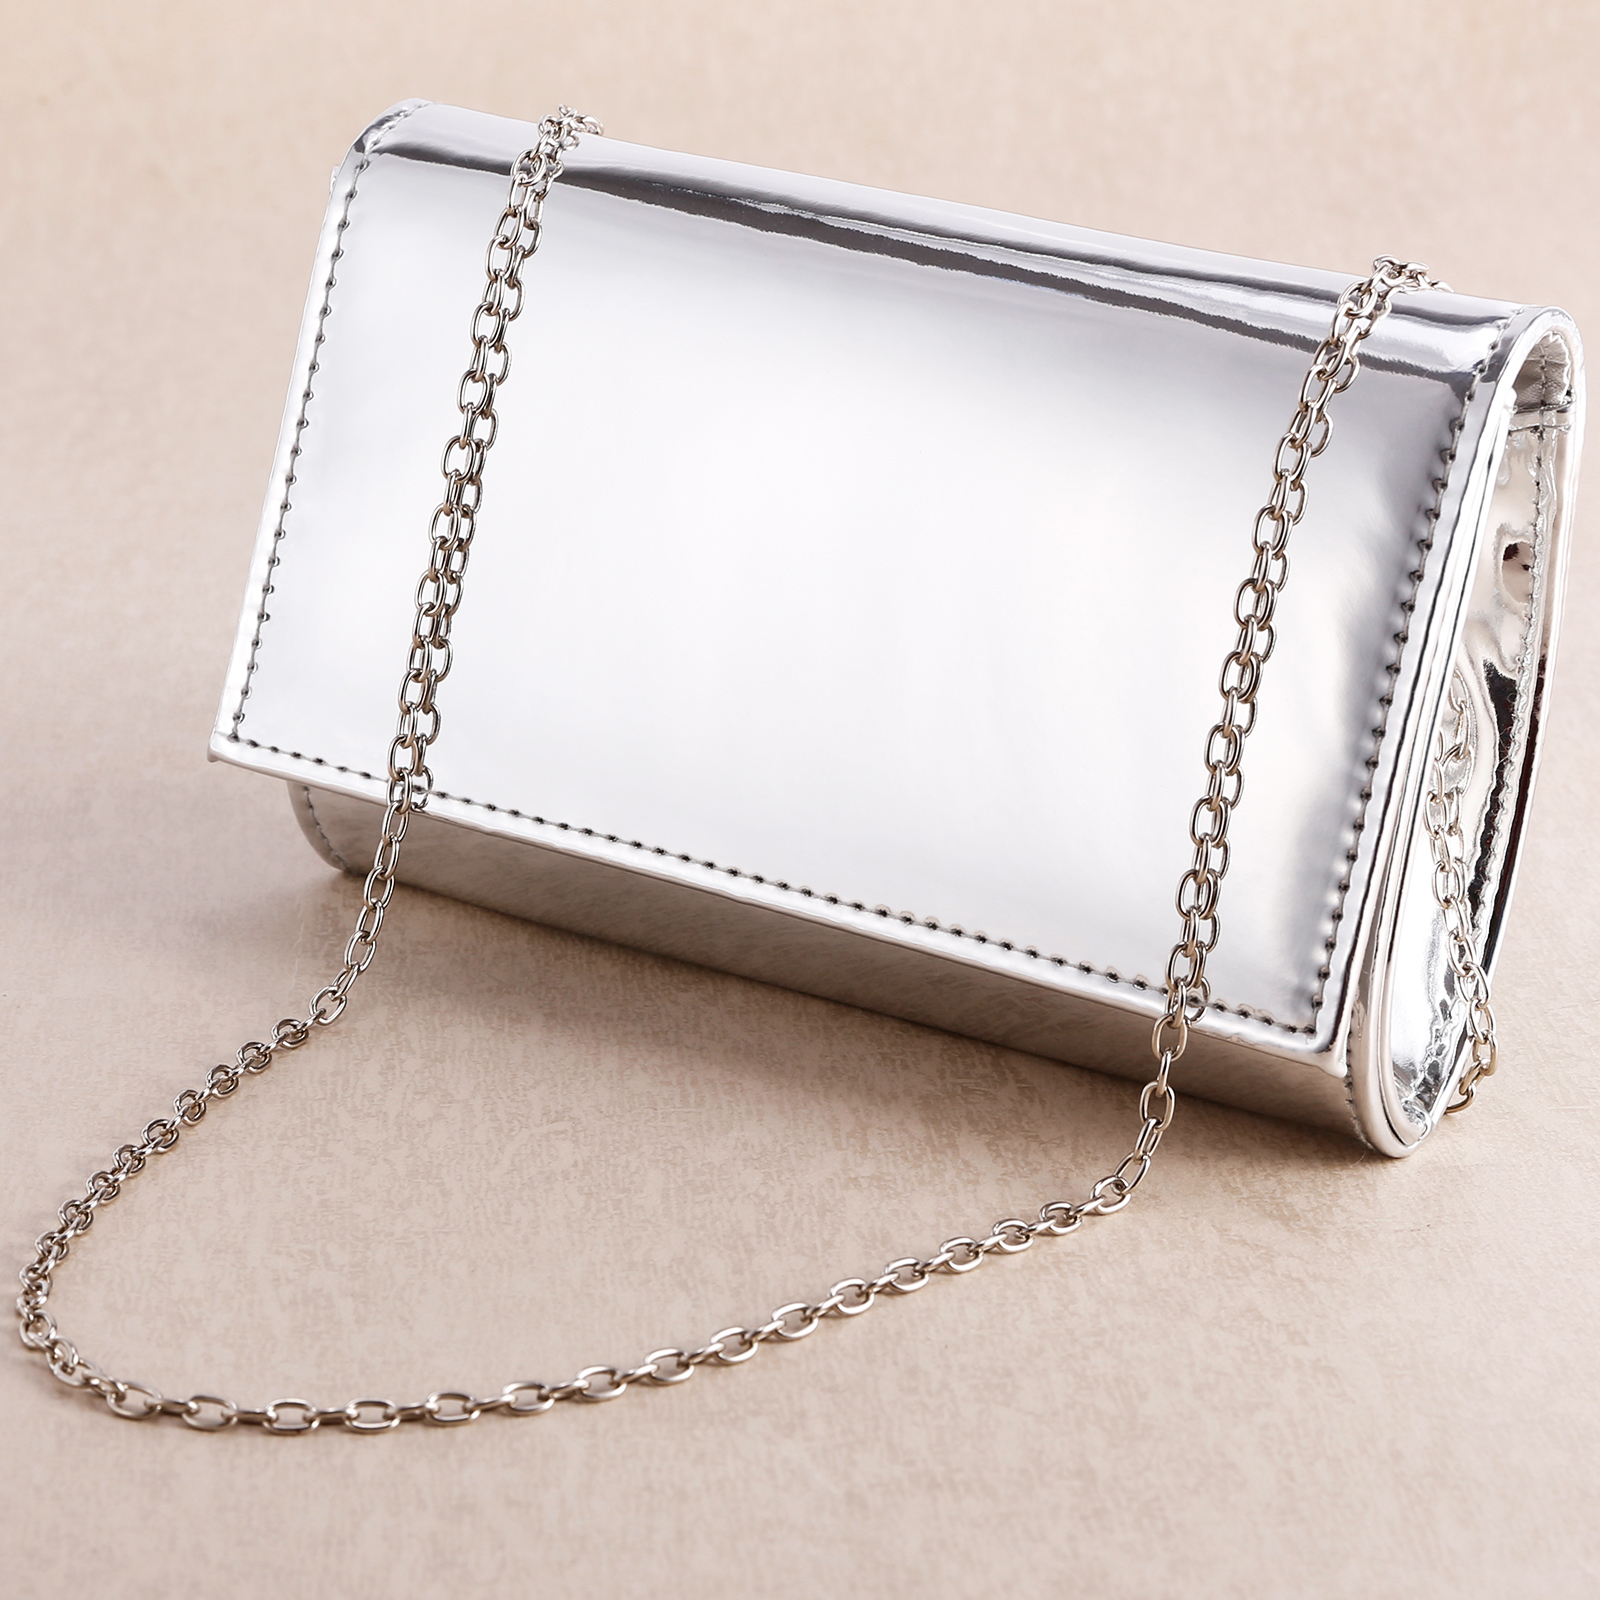 94c69b6f67f Women's Small Envelope Metallic Effect Prom Party Handbag Clutch Bag ...